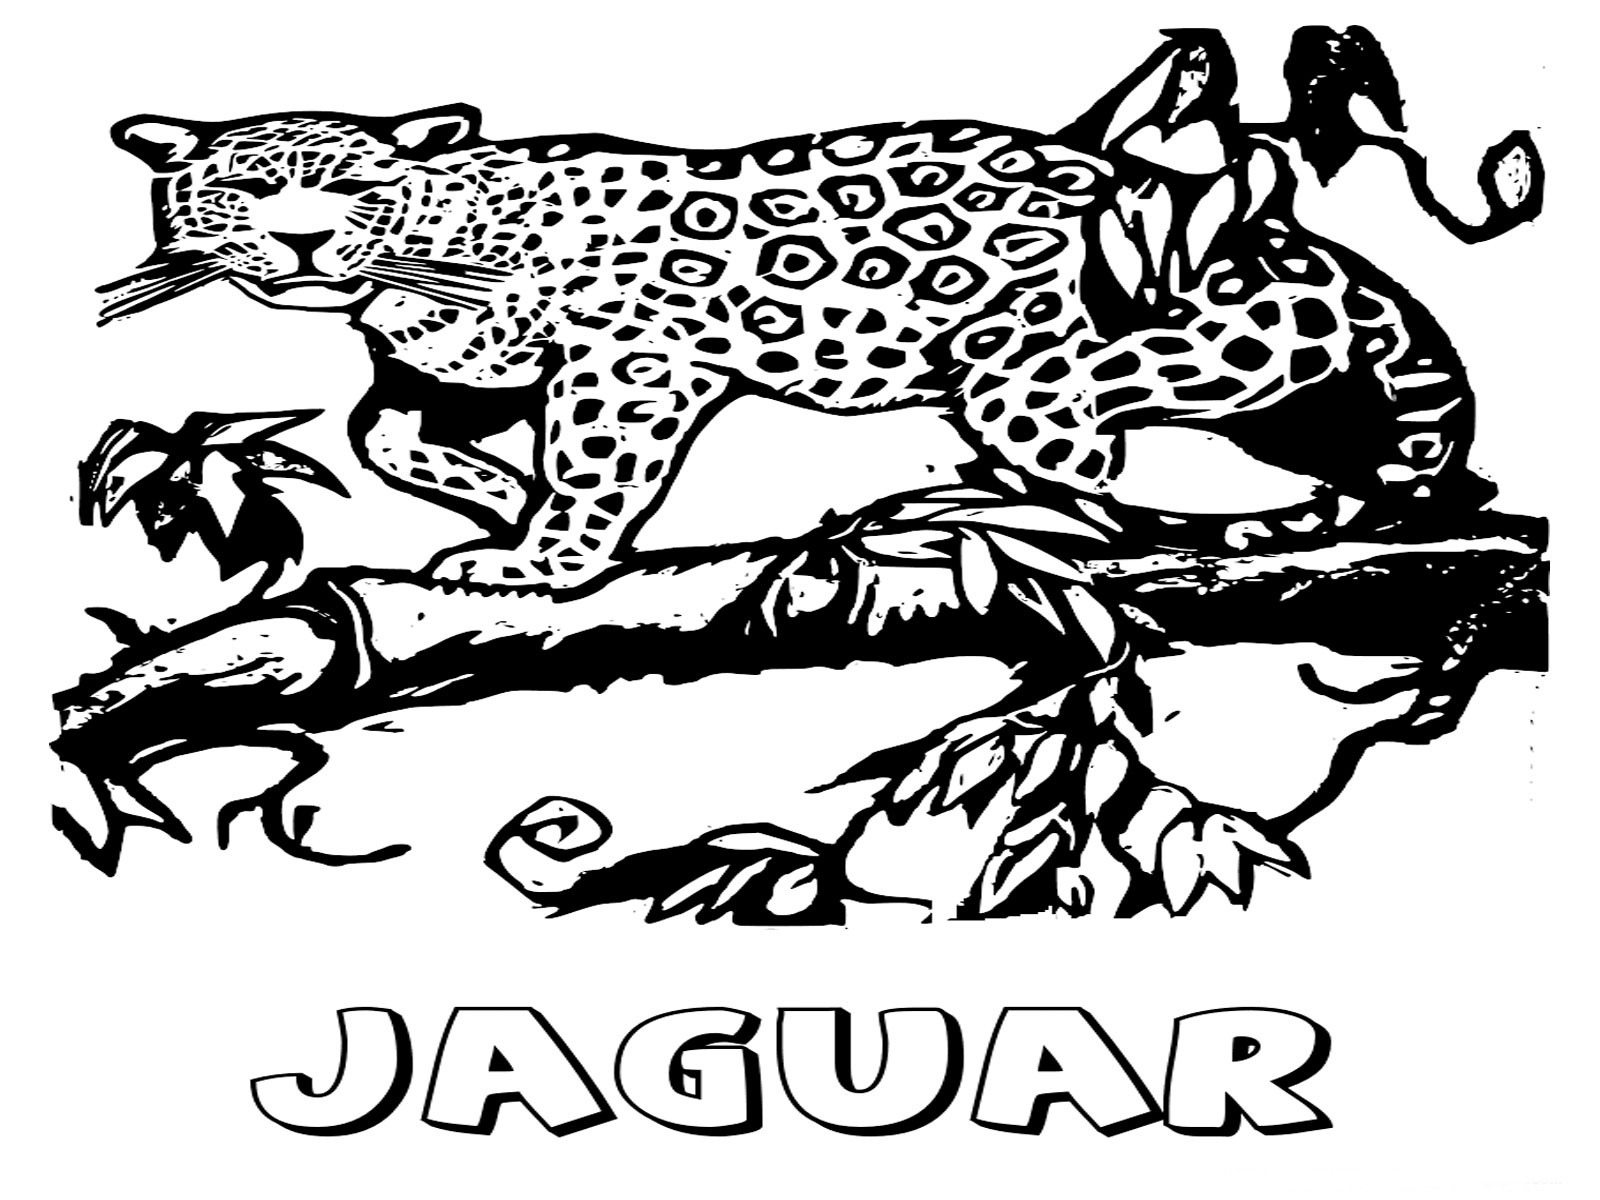 tapir coloring page - jaguar animal coloring pages realistic coloring pages